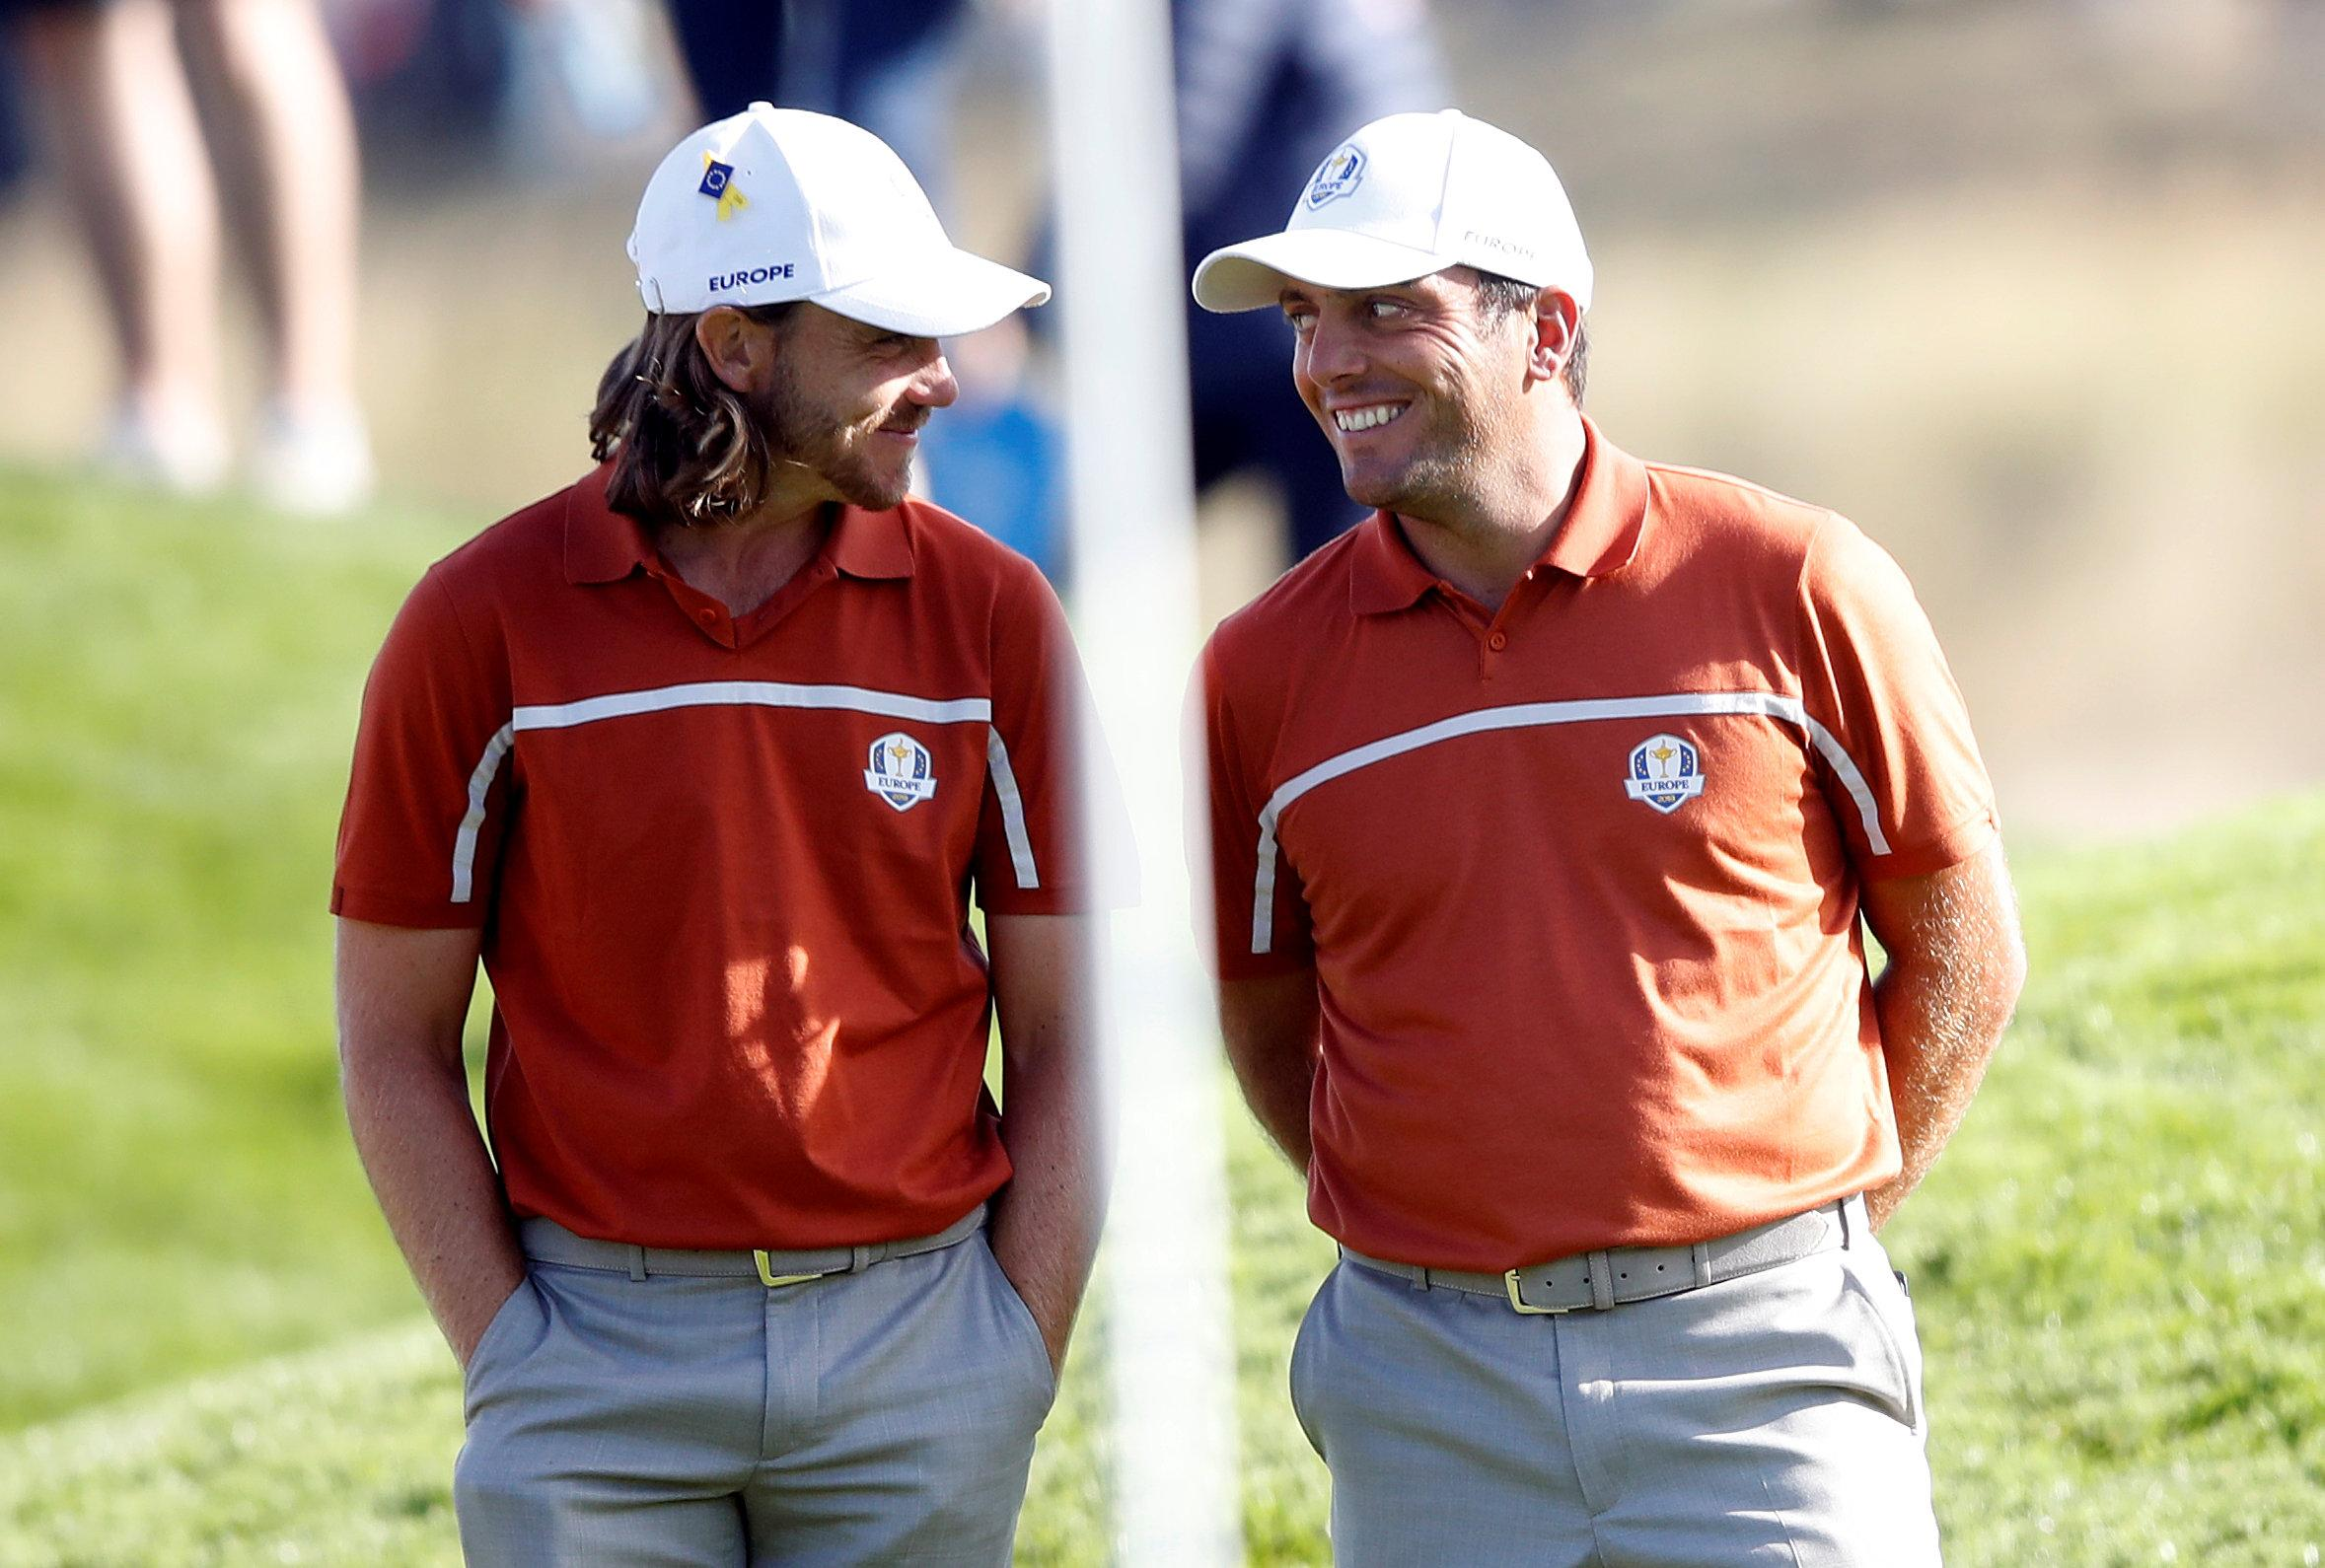 The pair stormed their way into the record books as Europe reclaimed the Ryder Cup